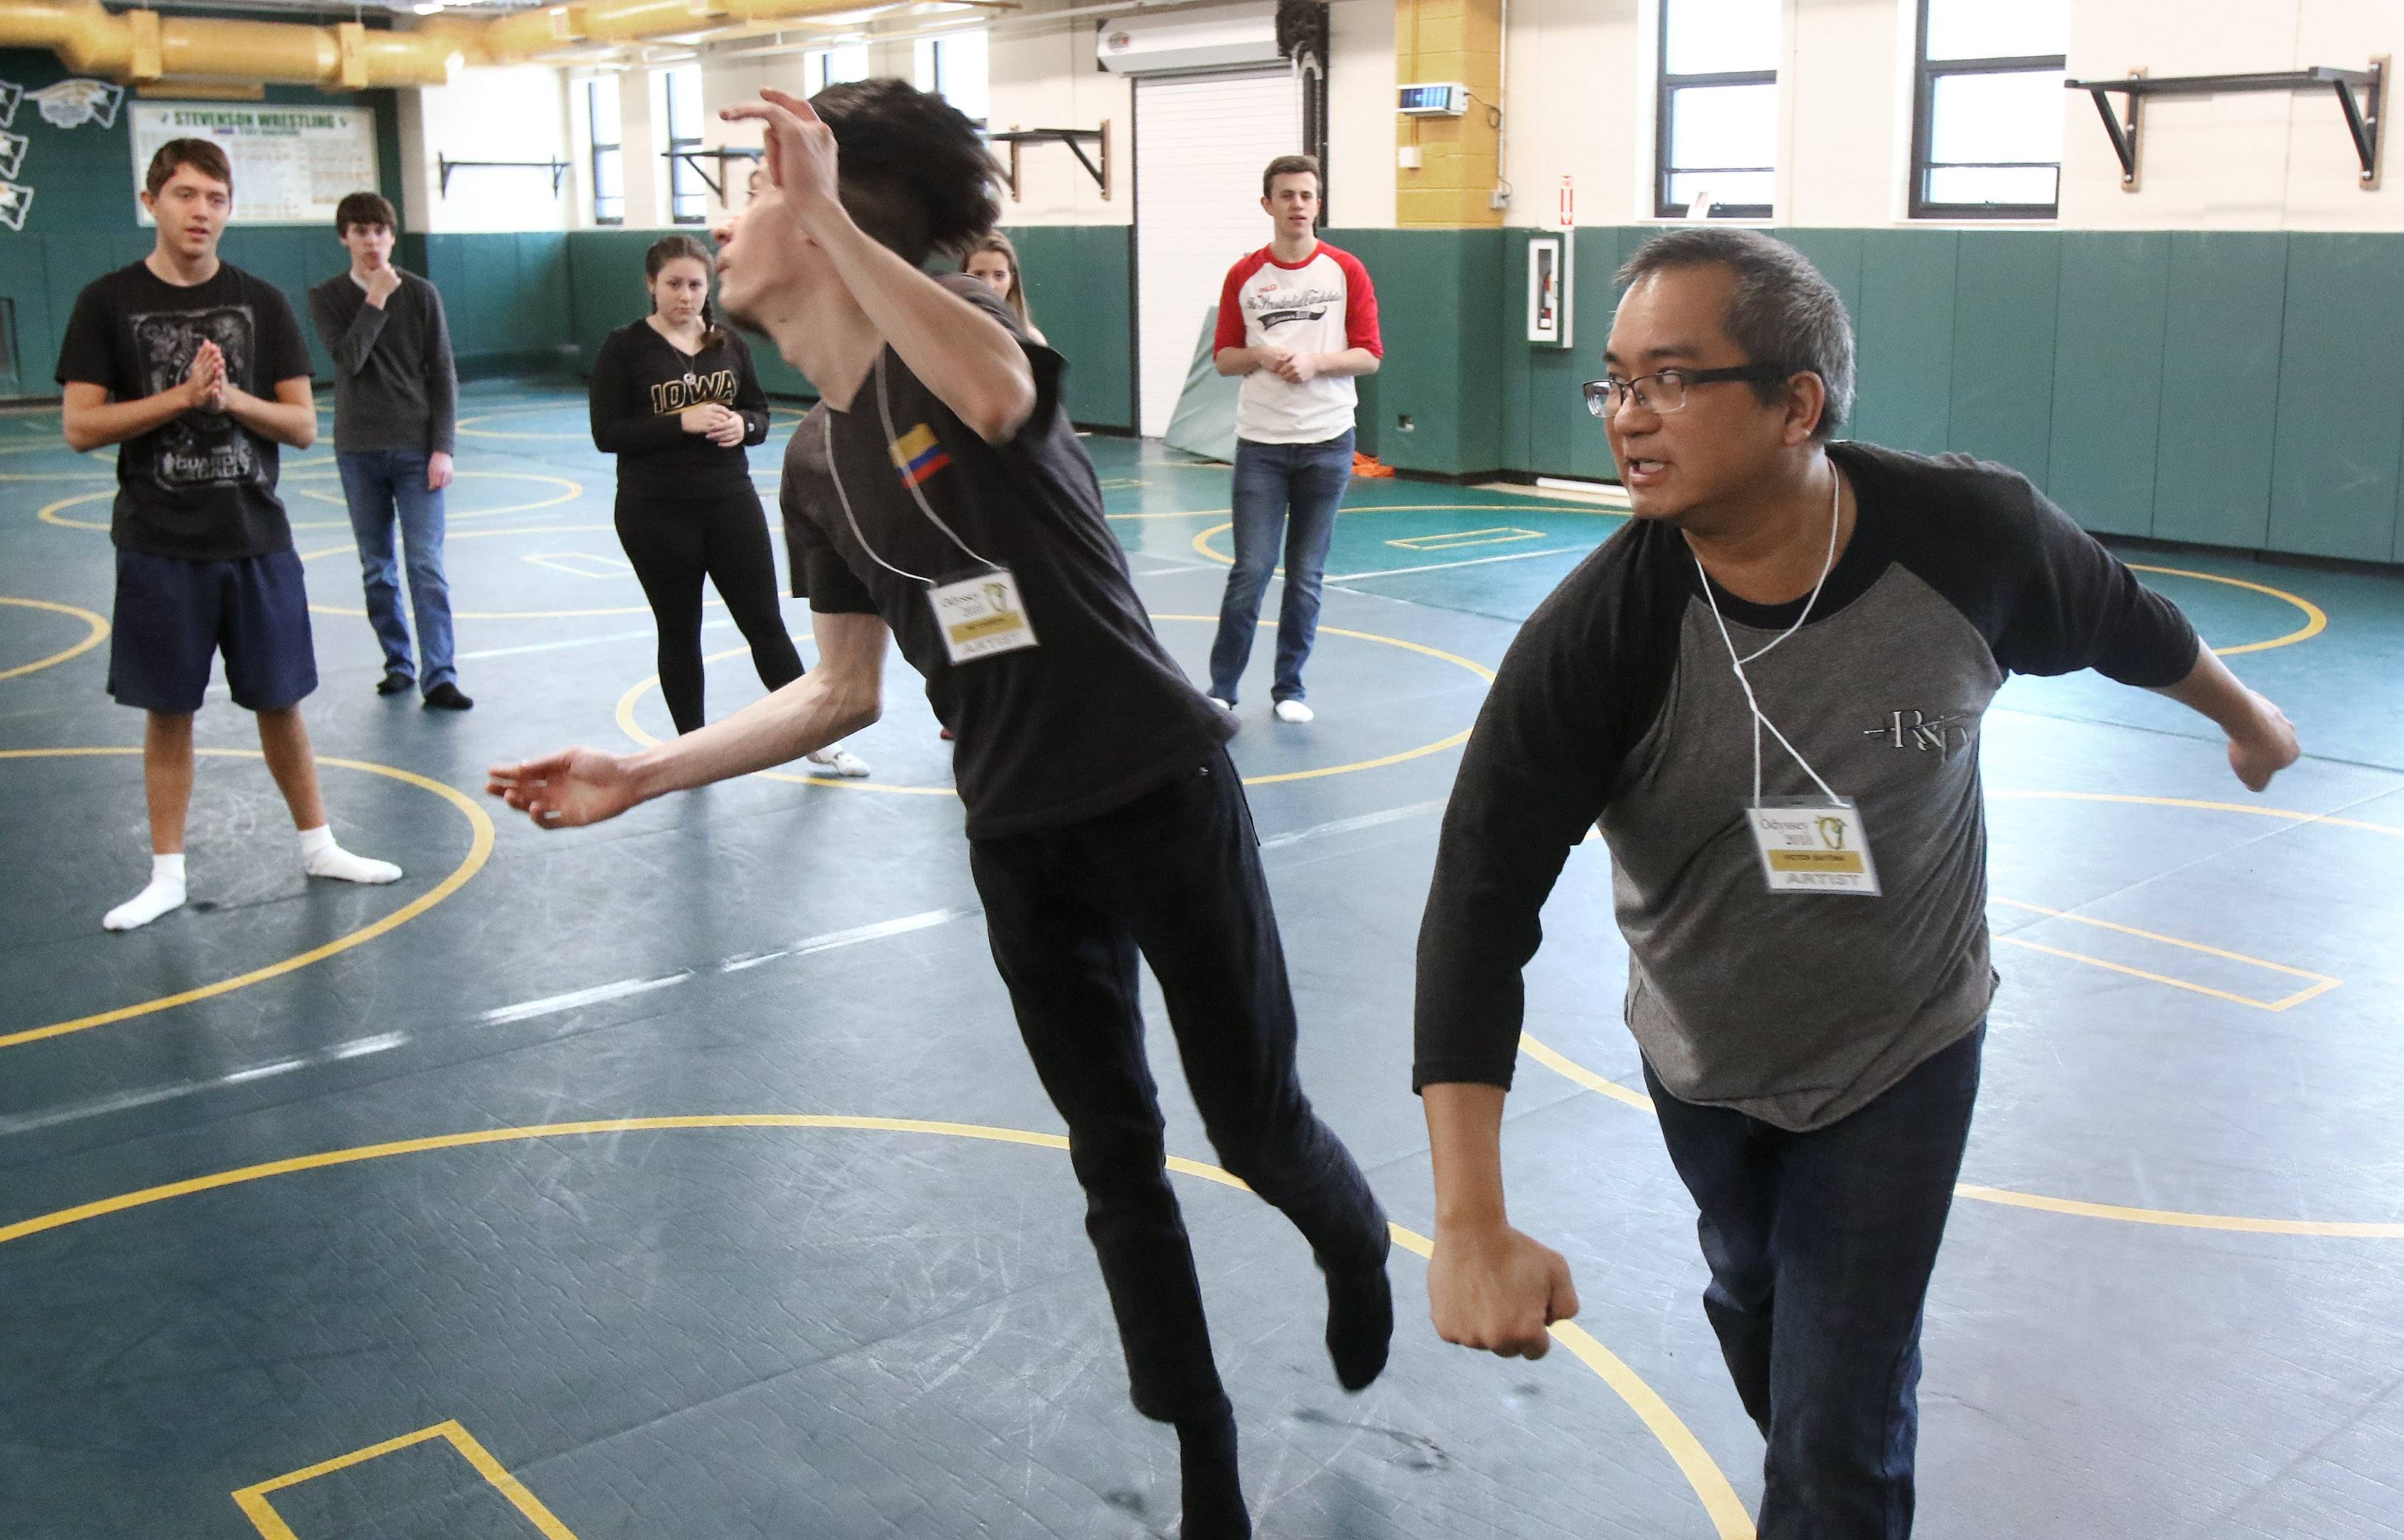 Instructor Victor Bayona pretends to hit his assistant Nicolas Cabrera in a combat fighting class Wednesday during the biennial Odyssey fine arts festival at Stevenson High School in Lincolnshire.